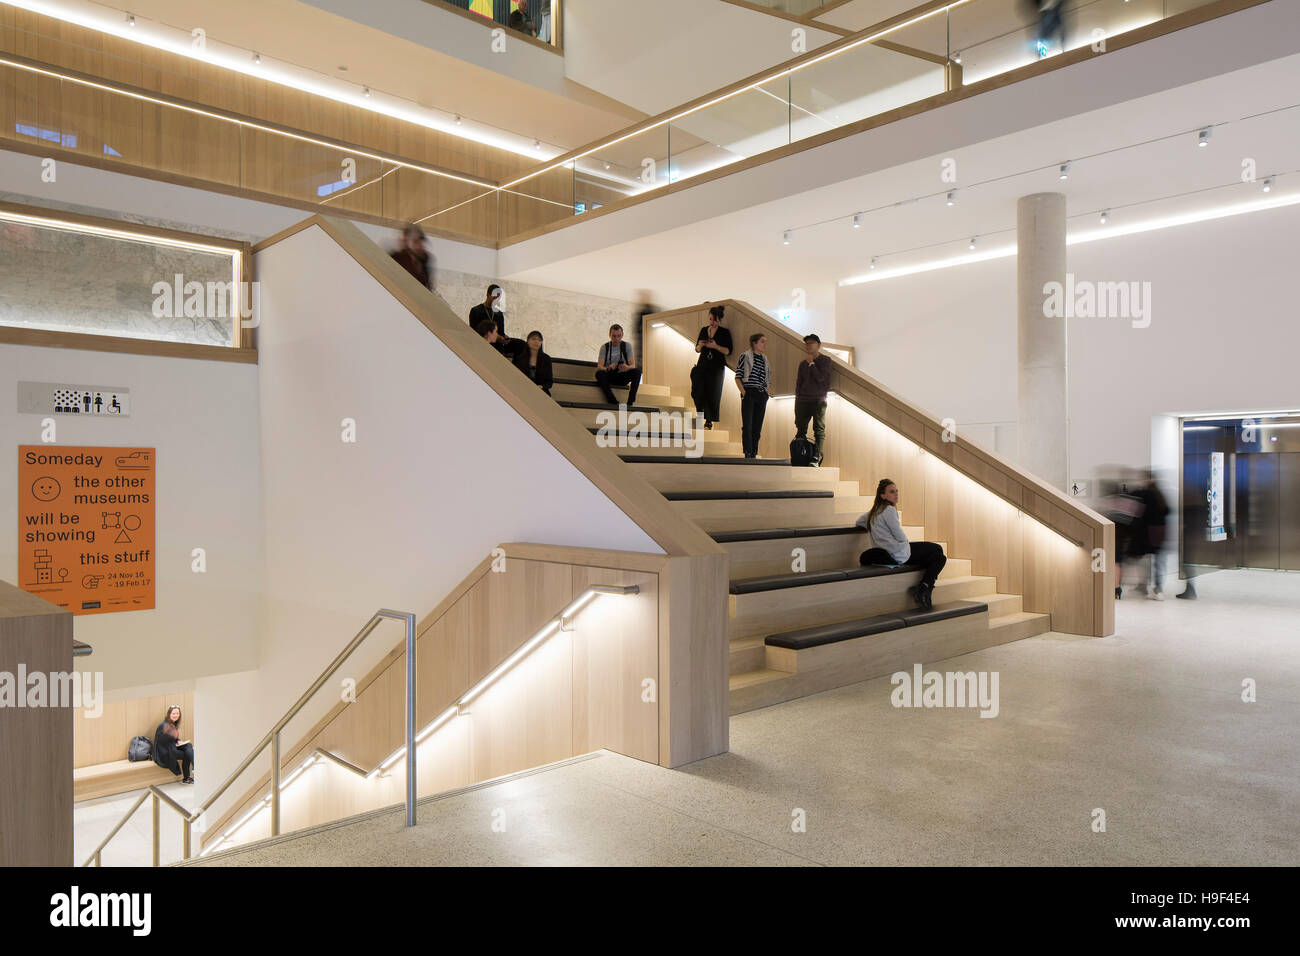 Interior View Of Atrium Stairs Design Museum London